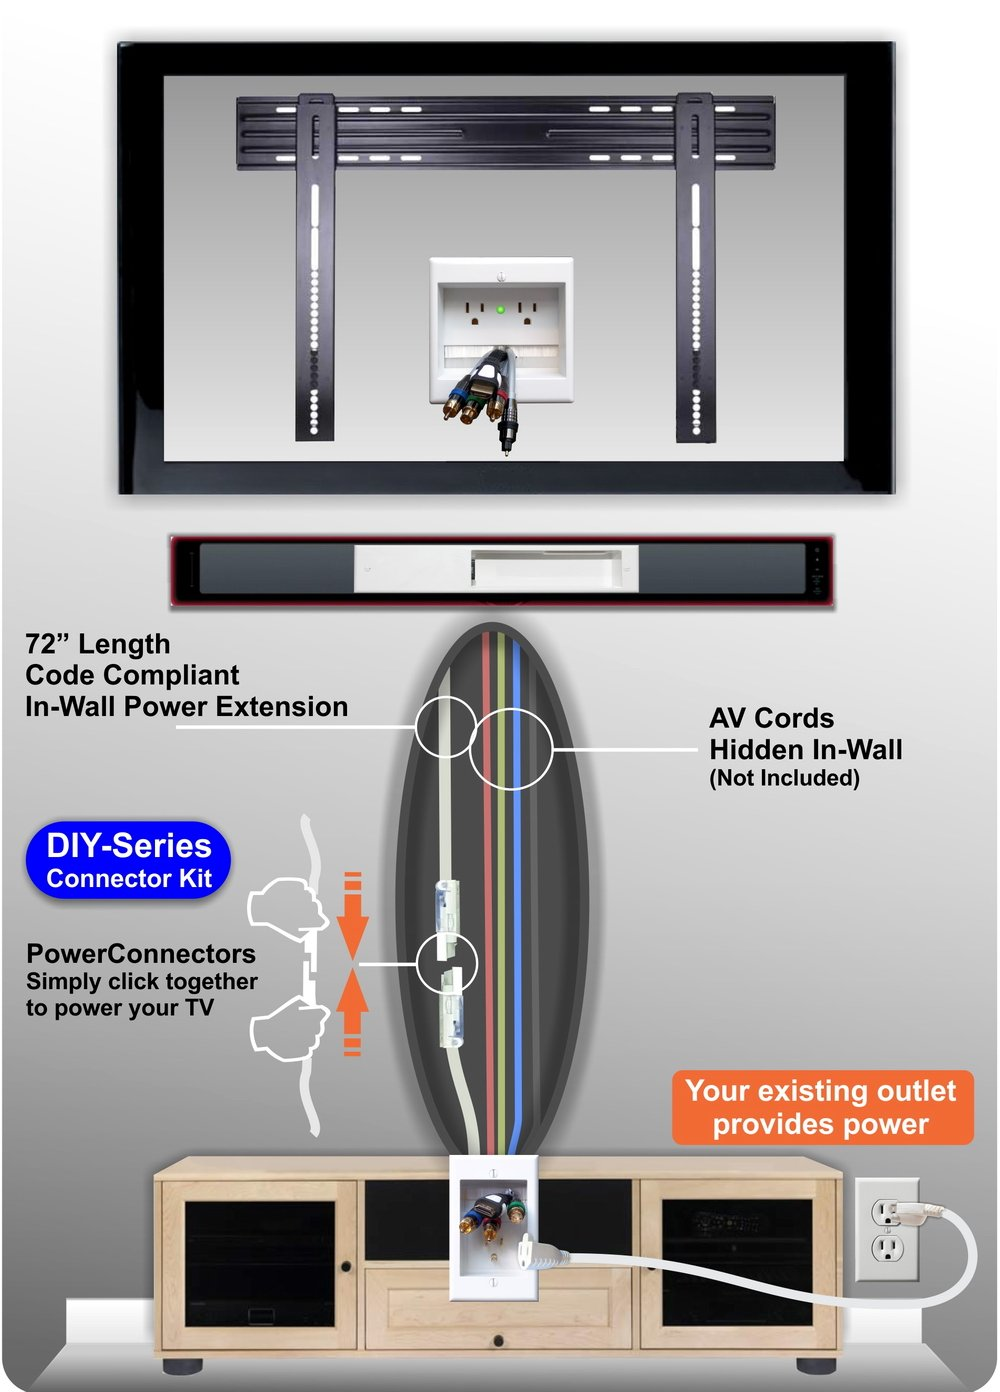 PowerBridge TWO-CK Dual Outlet for TV and Sound-Bar Recessed In-Wall Cable Management System Kit (TWOSB-CK) by PowerBridge Solutions (Image #3)